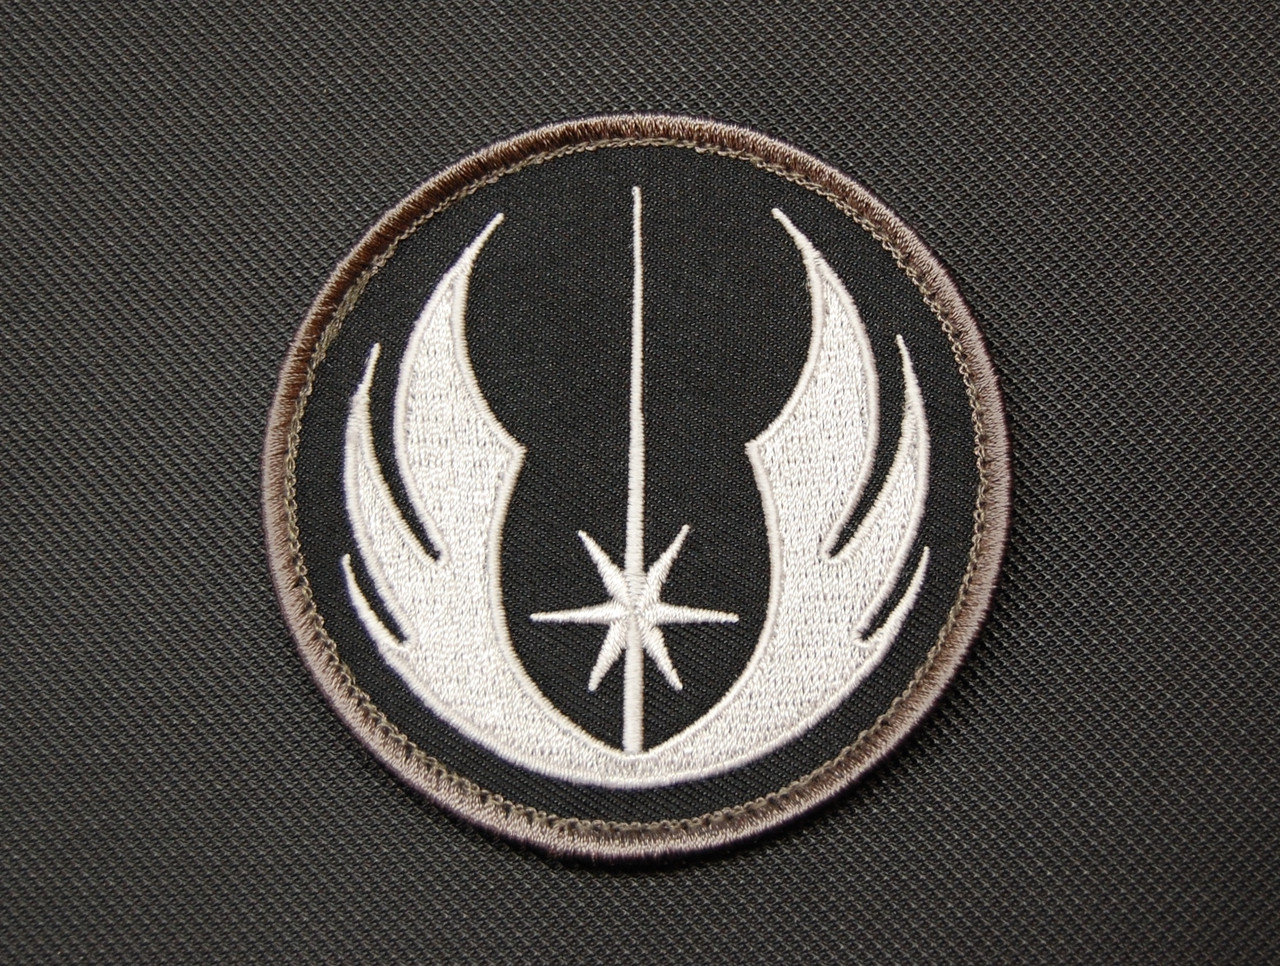 Jedi order star wars parody embroidered velcro morale patch star wars parody jedi order embroidered velcro backed morale patch surplus ammo biocorpaavc